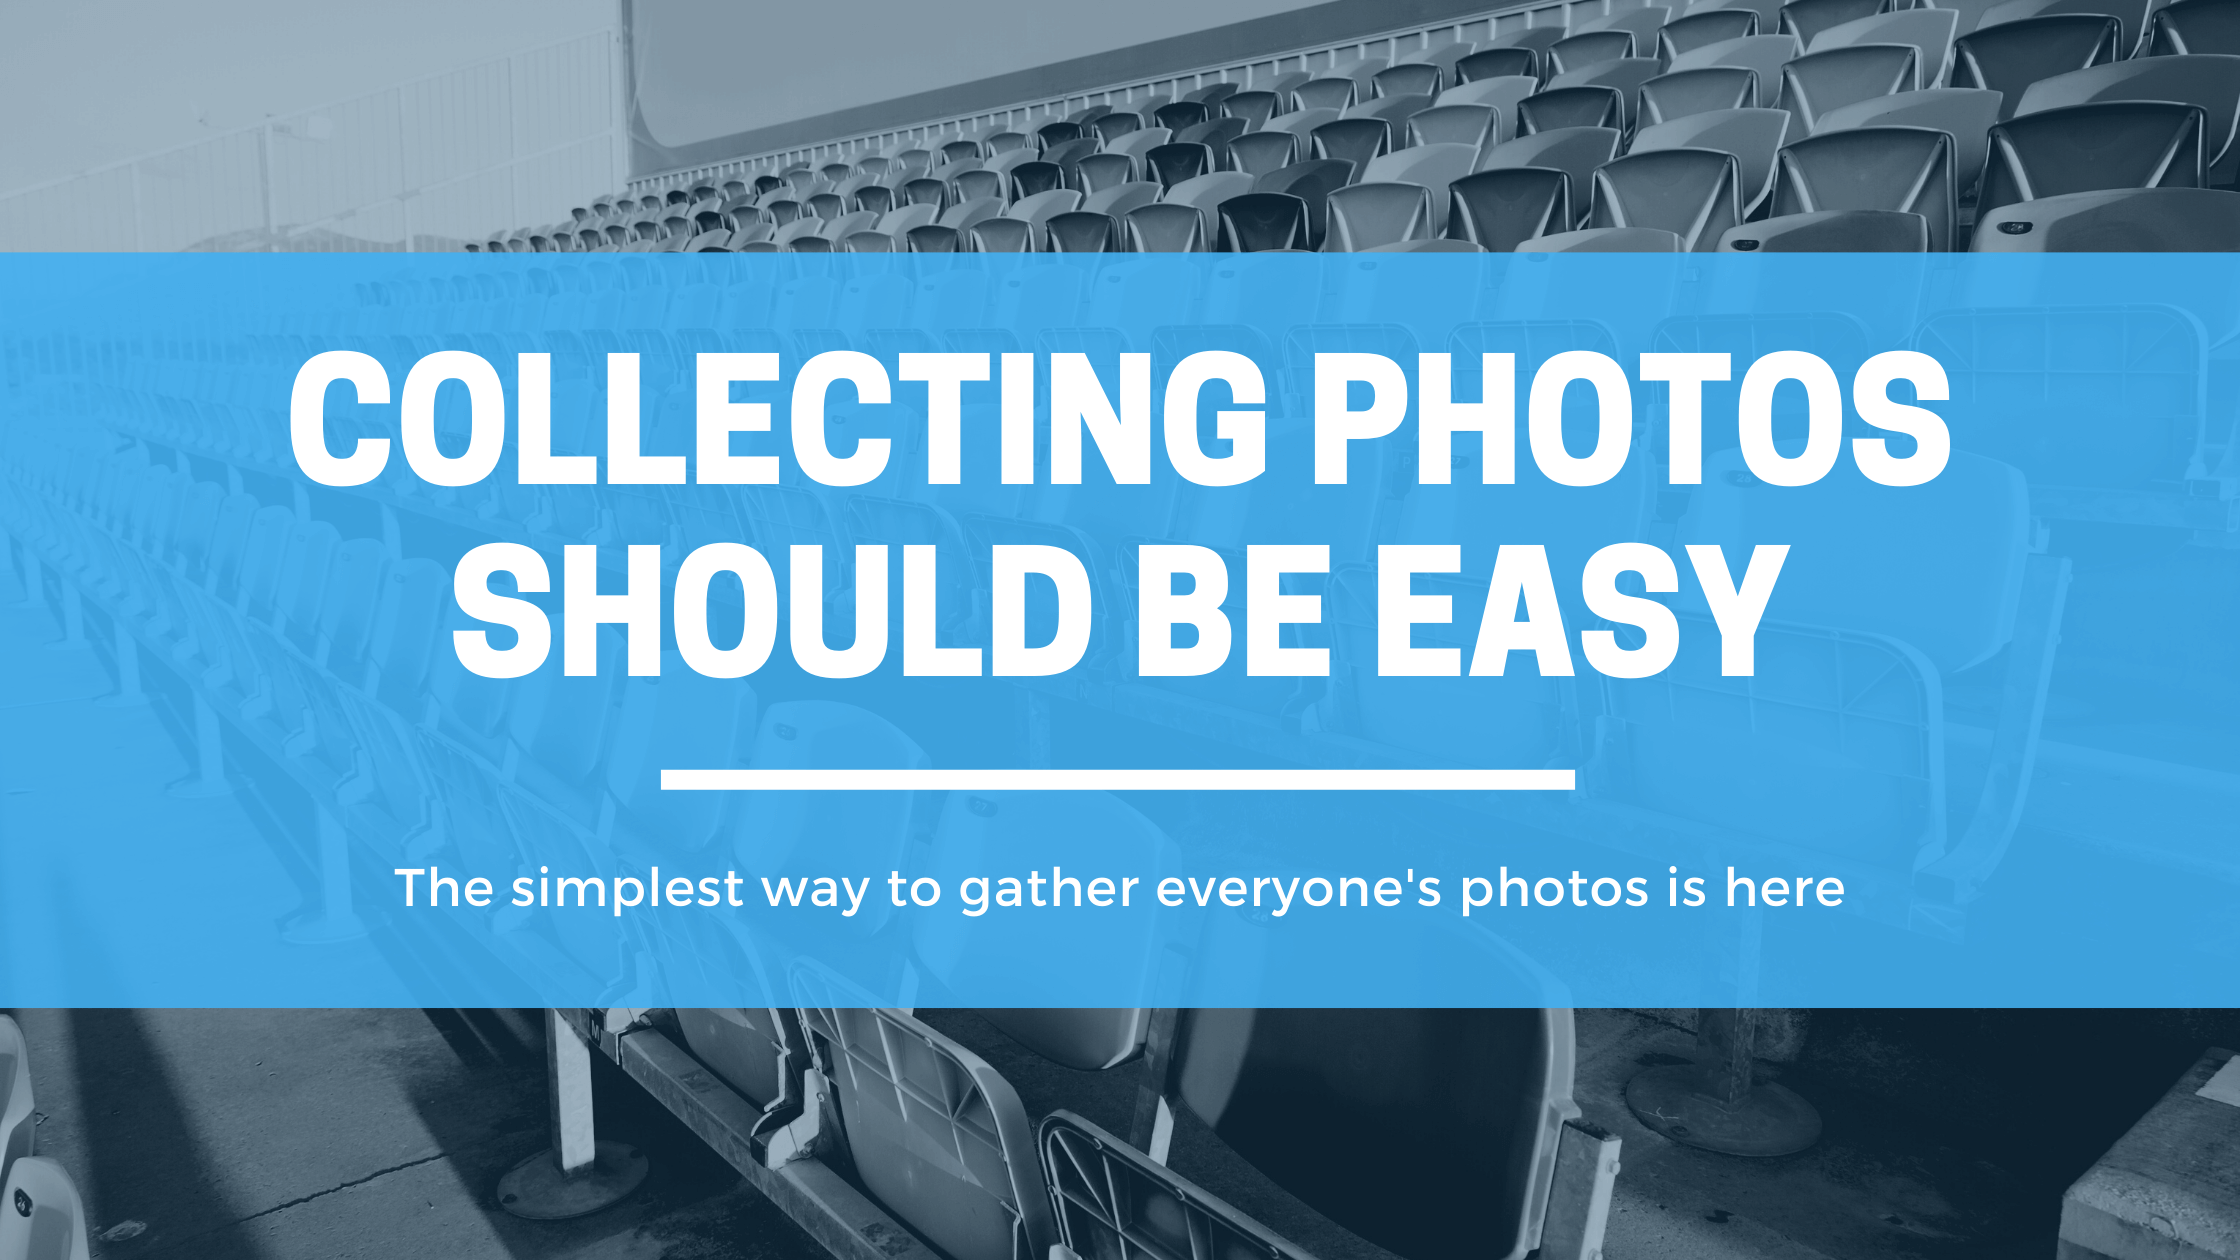 Collecting photos should be easy